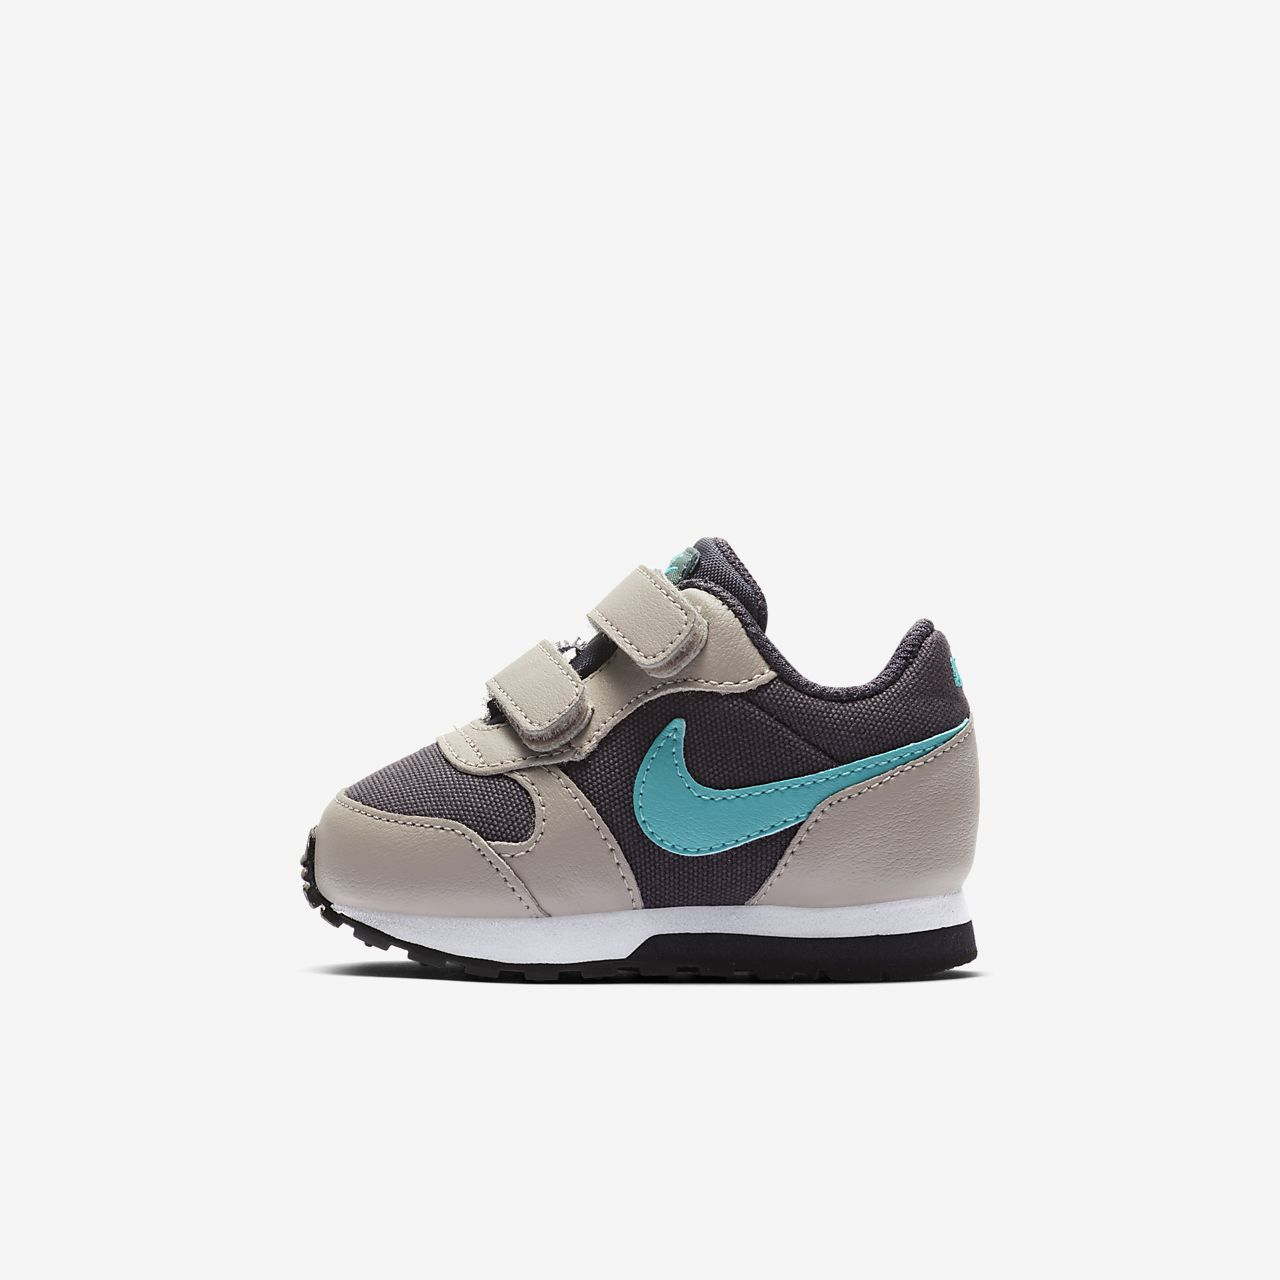 Nike MD Runner 2 sko for sped-/småbarn